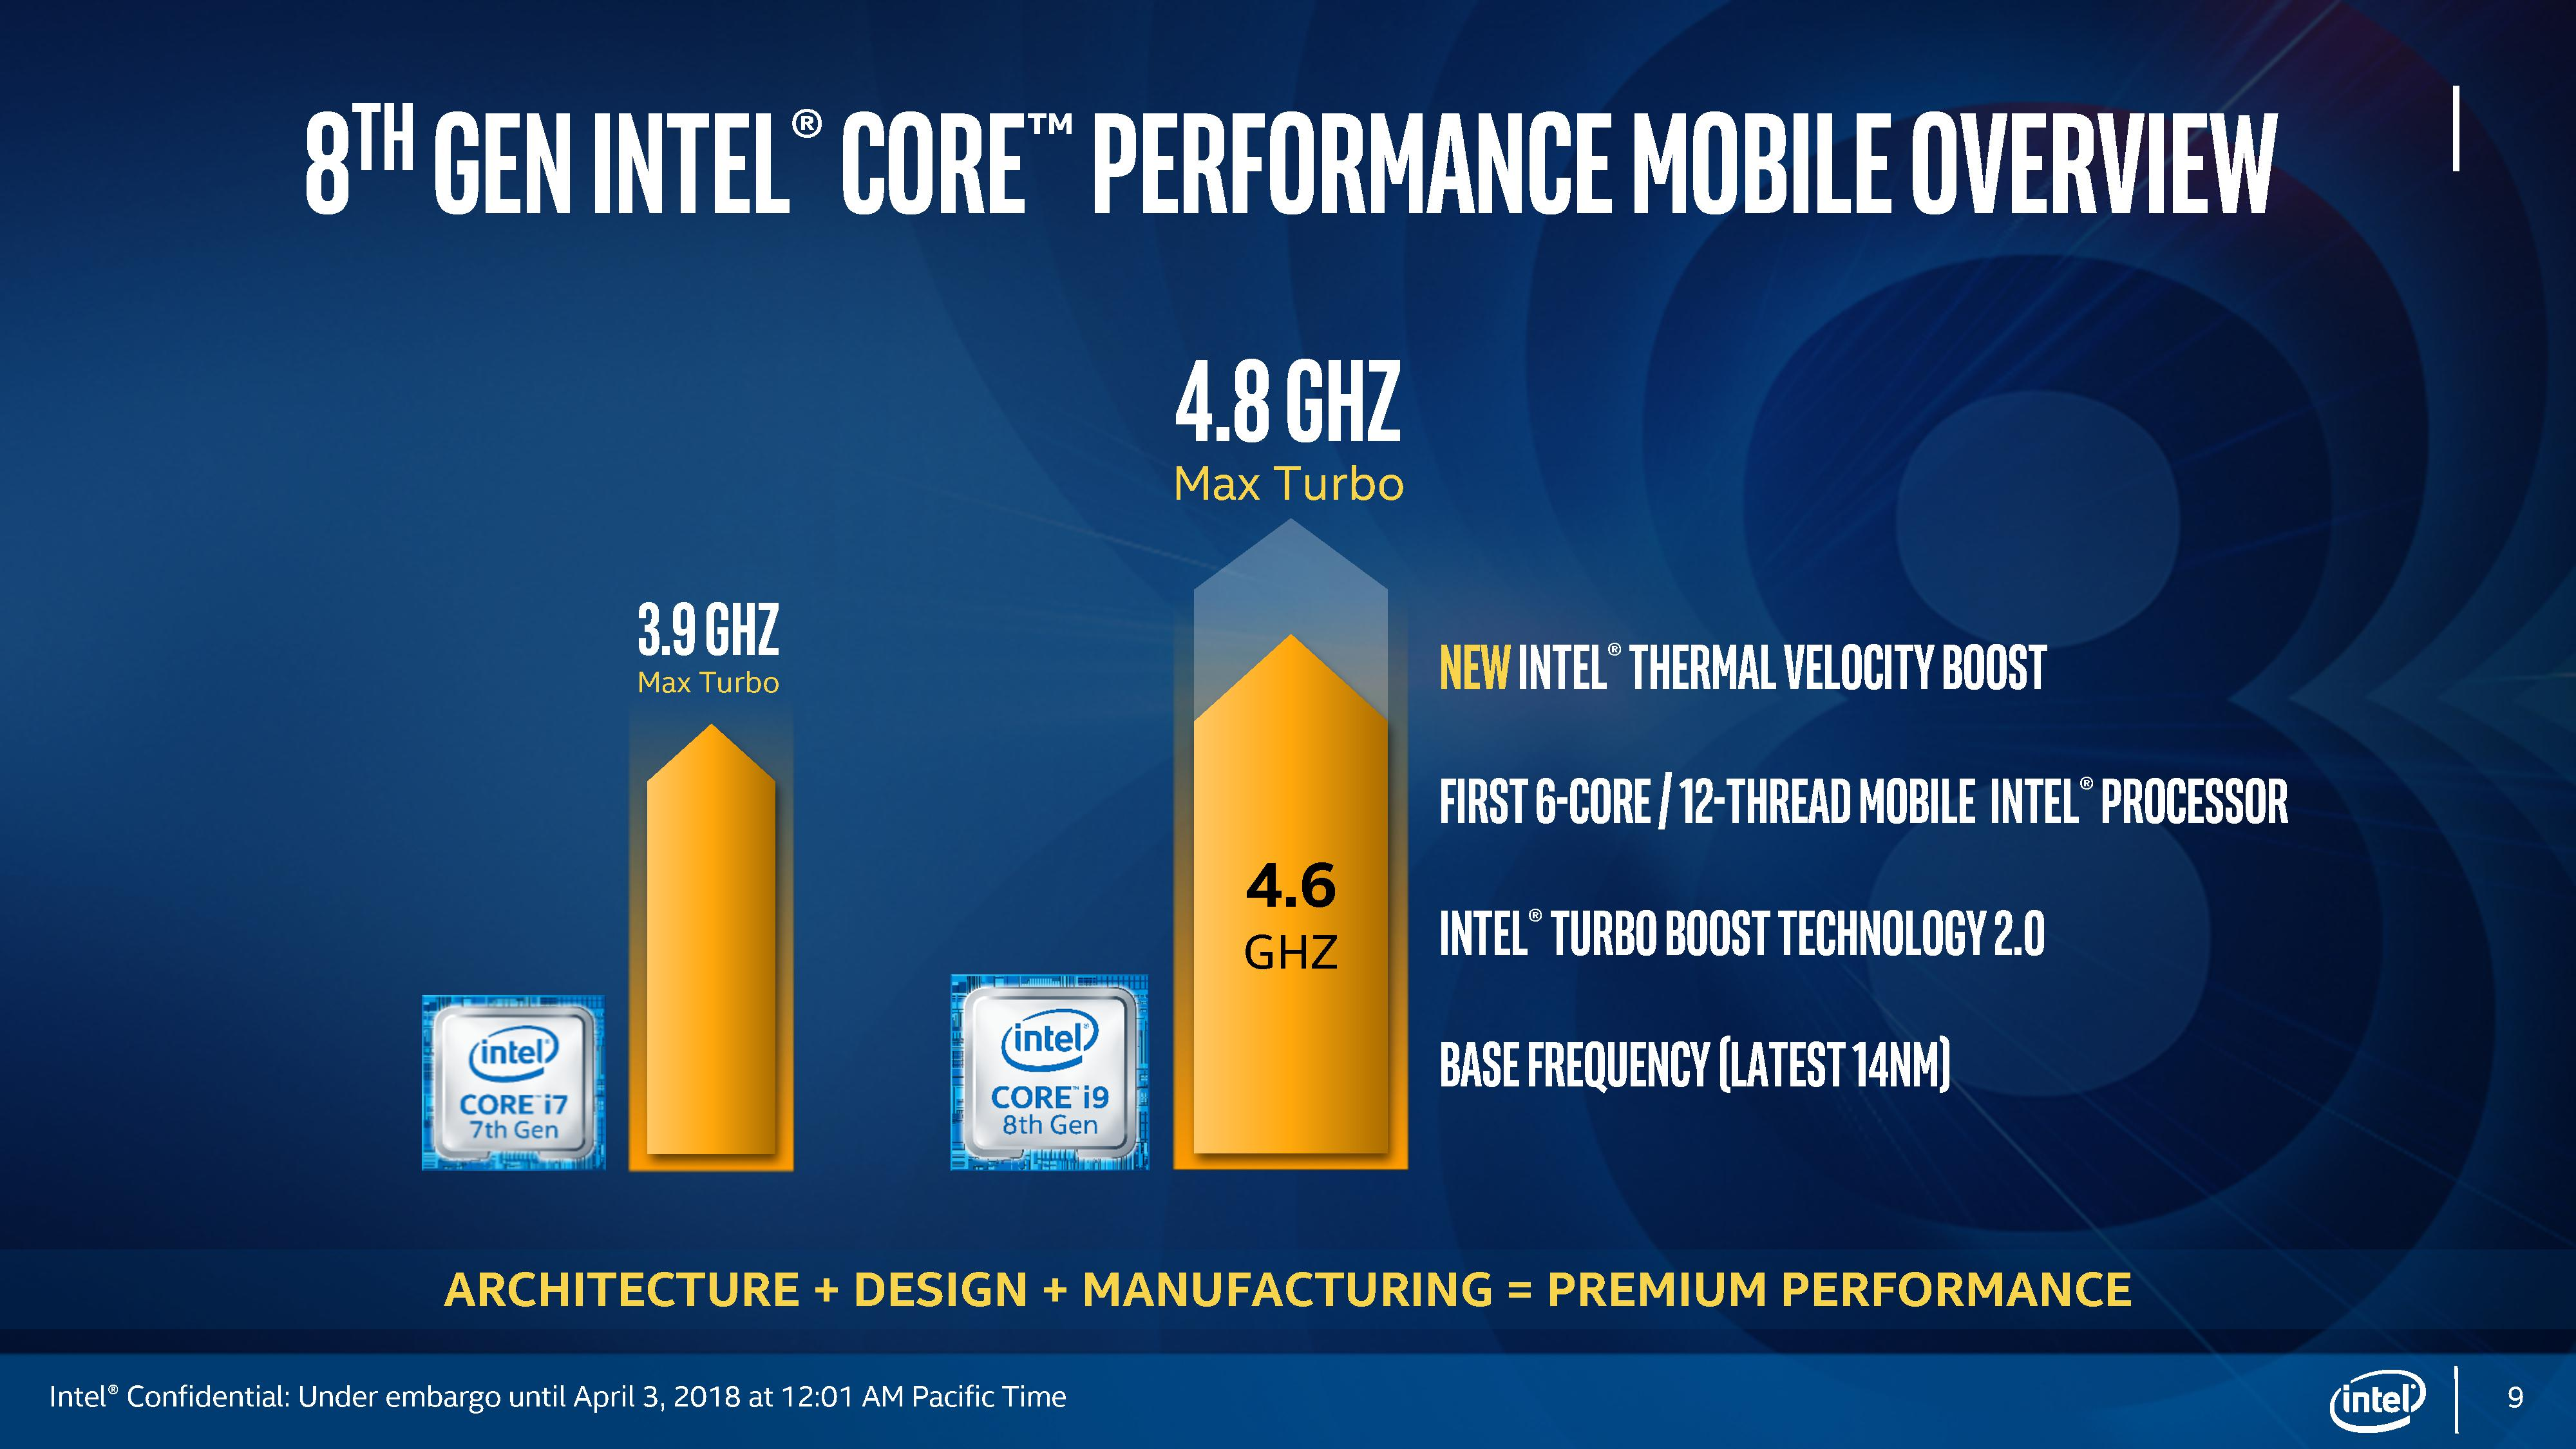 High-Performance Mobile: Core i9 and Xeon E at 45W - Intel Expands